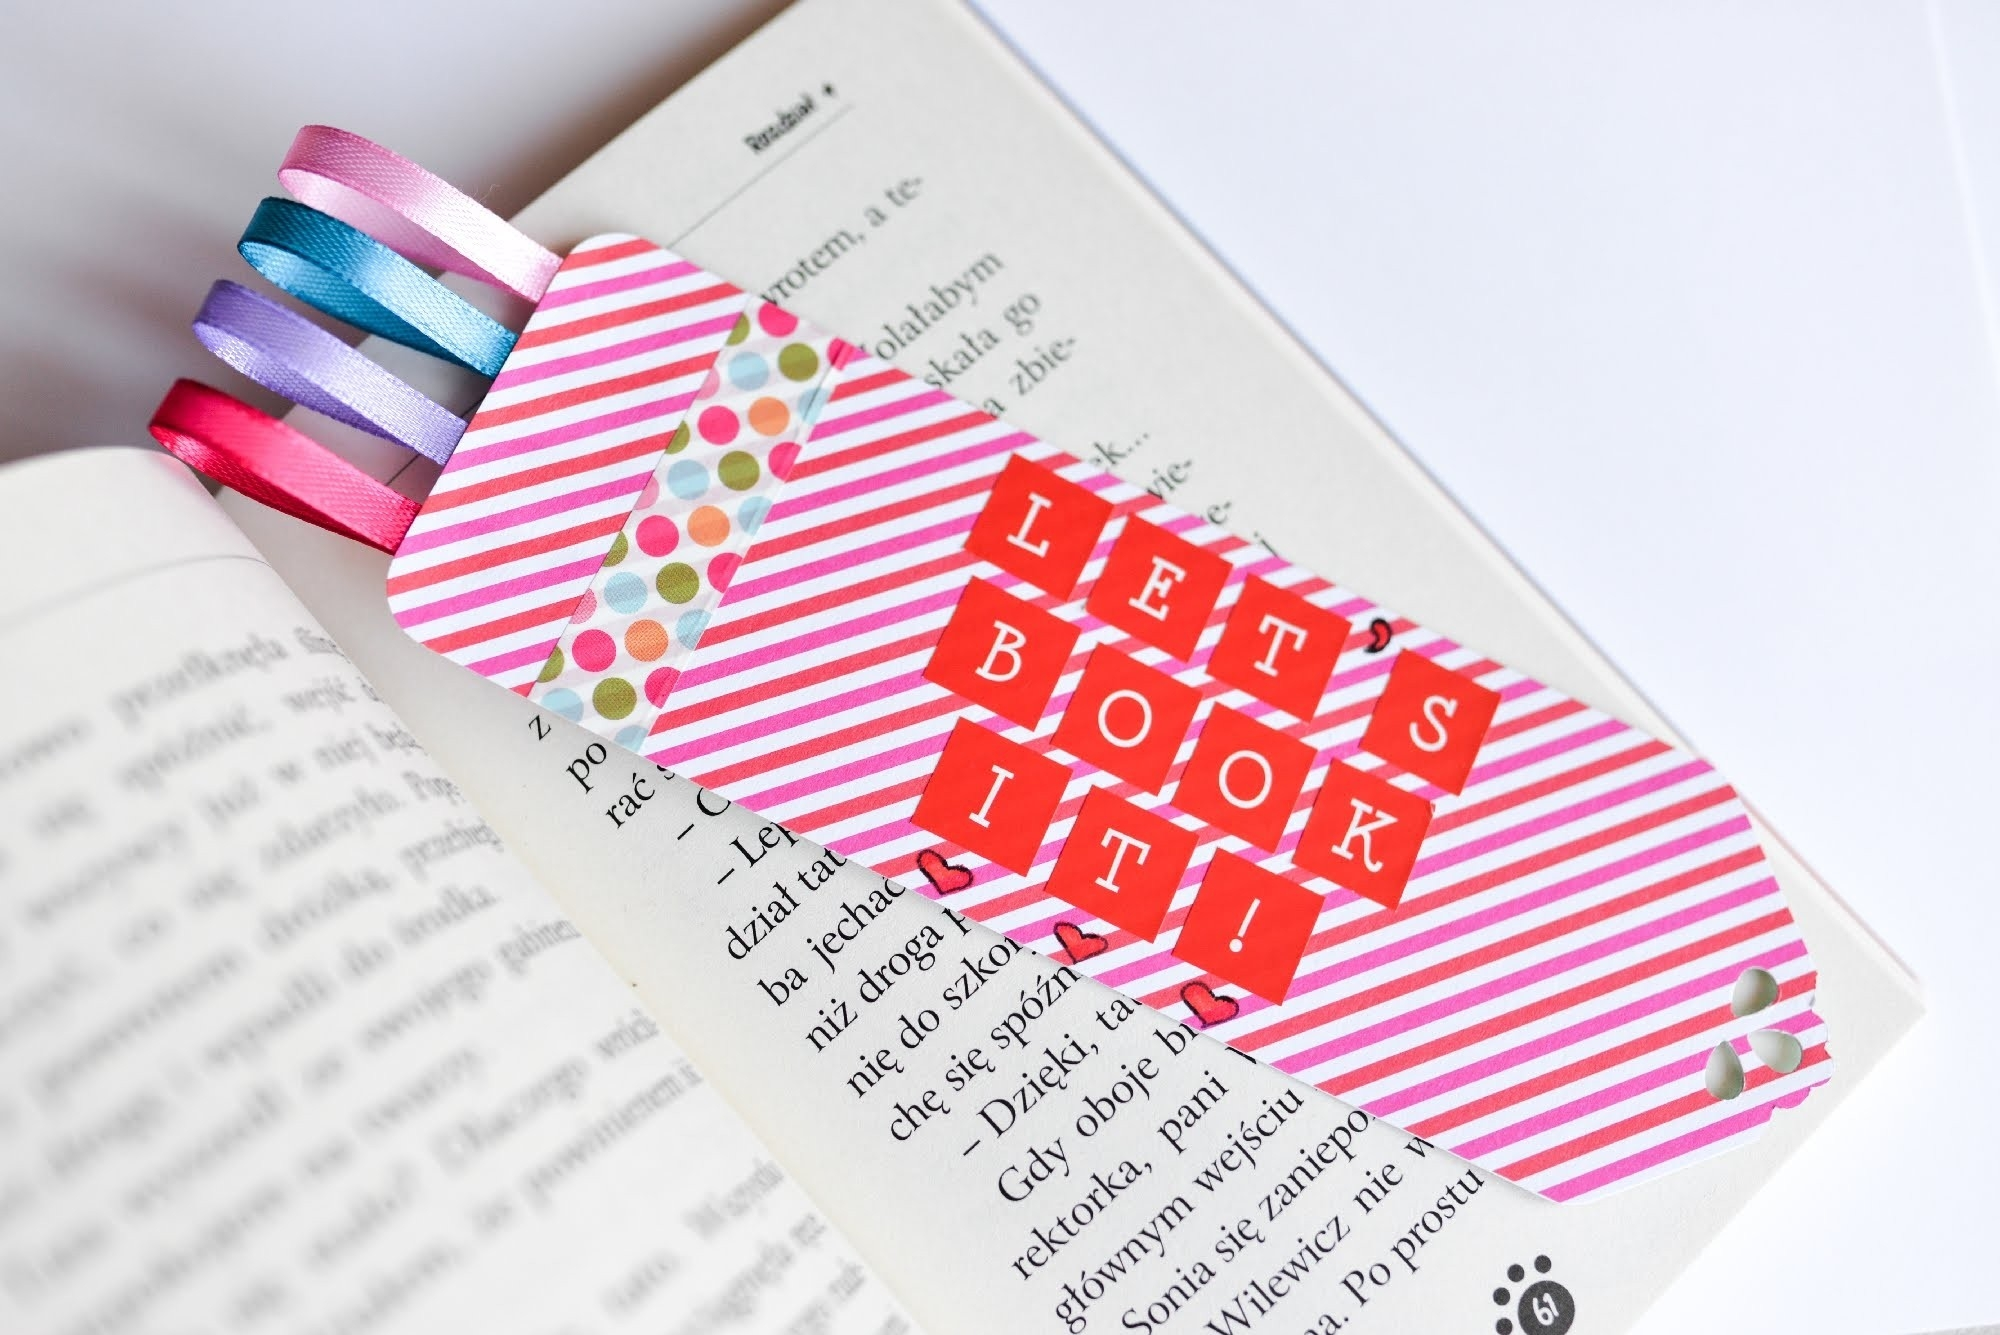 How To Make - Bookmark Great Gift - Step By Step | Zakładka Do pertaining to How To Make Bookmarks Step By Step 27889